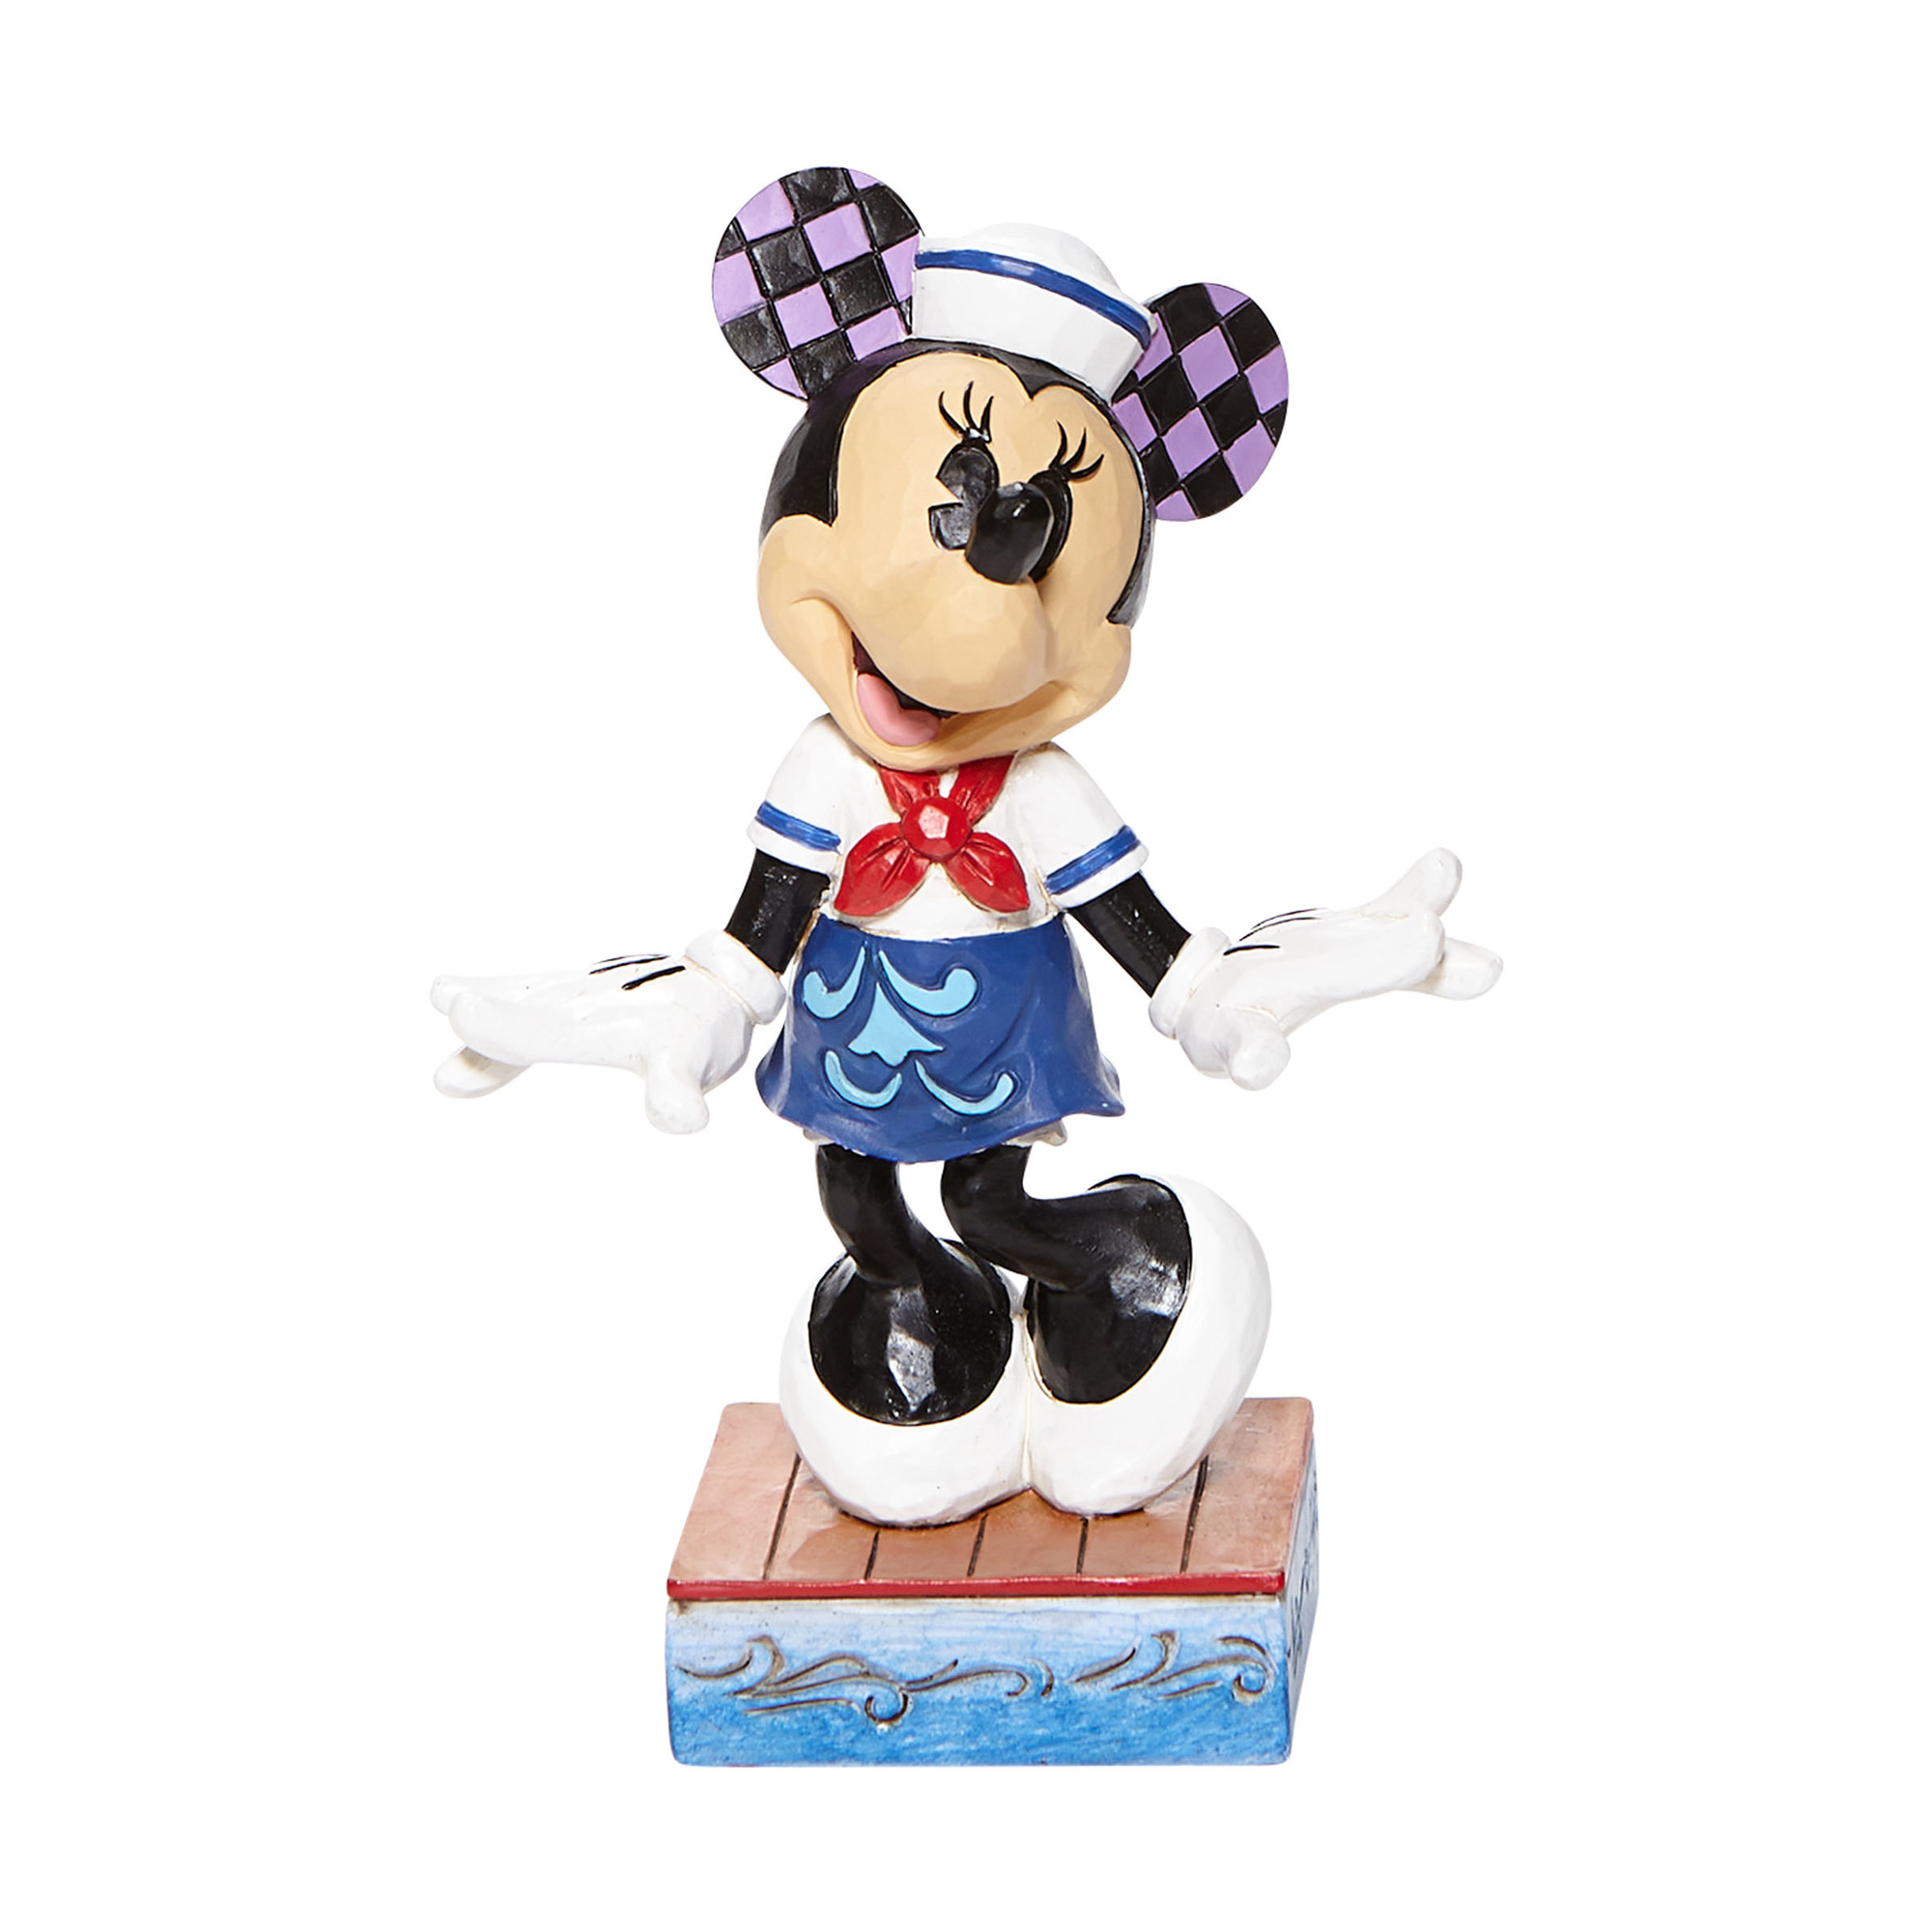 6008080 Minnie Sailor Personality